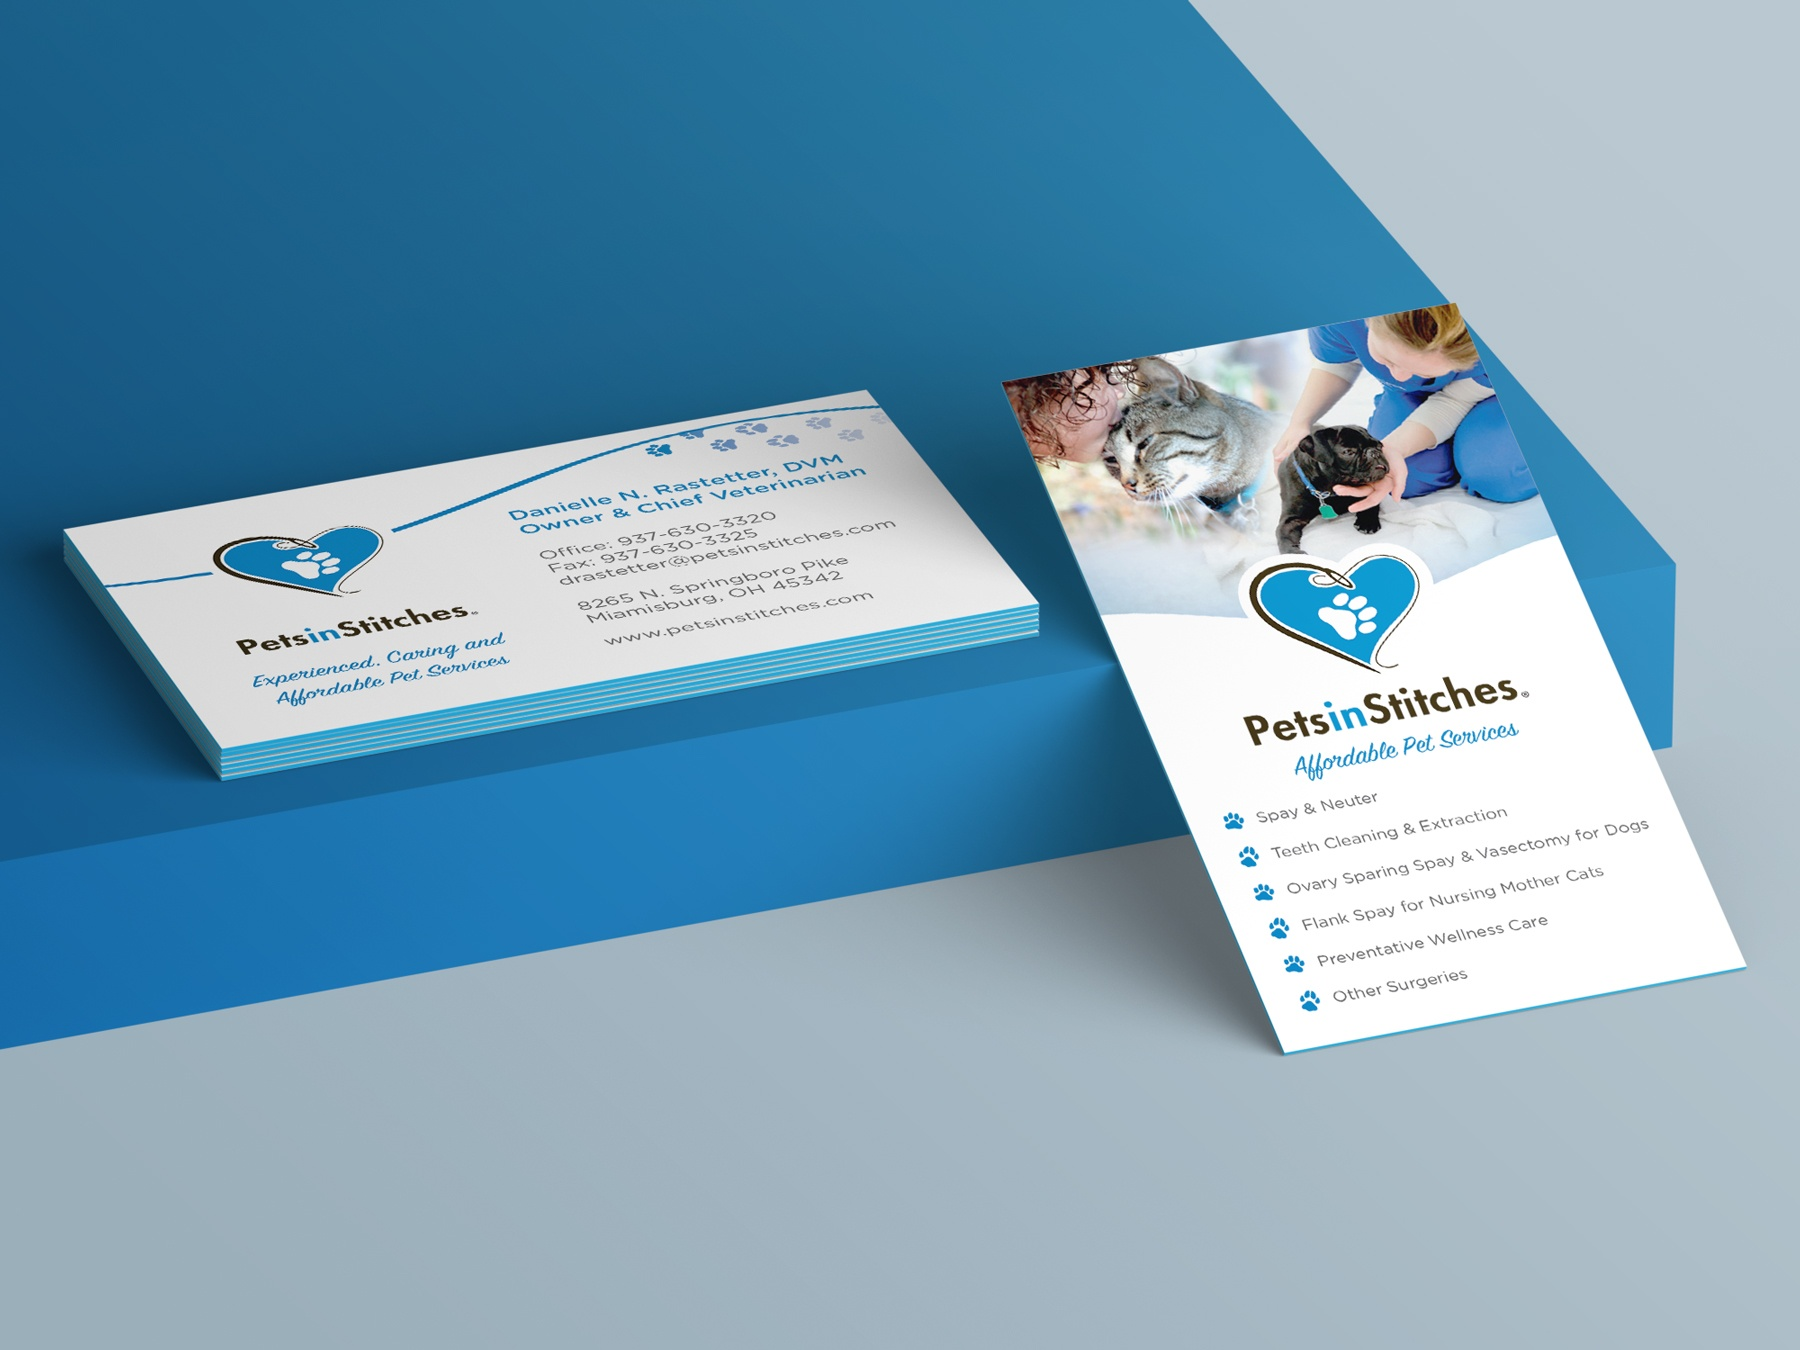 A photo of the business card design